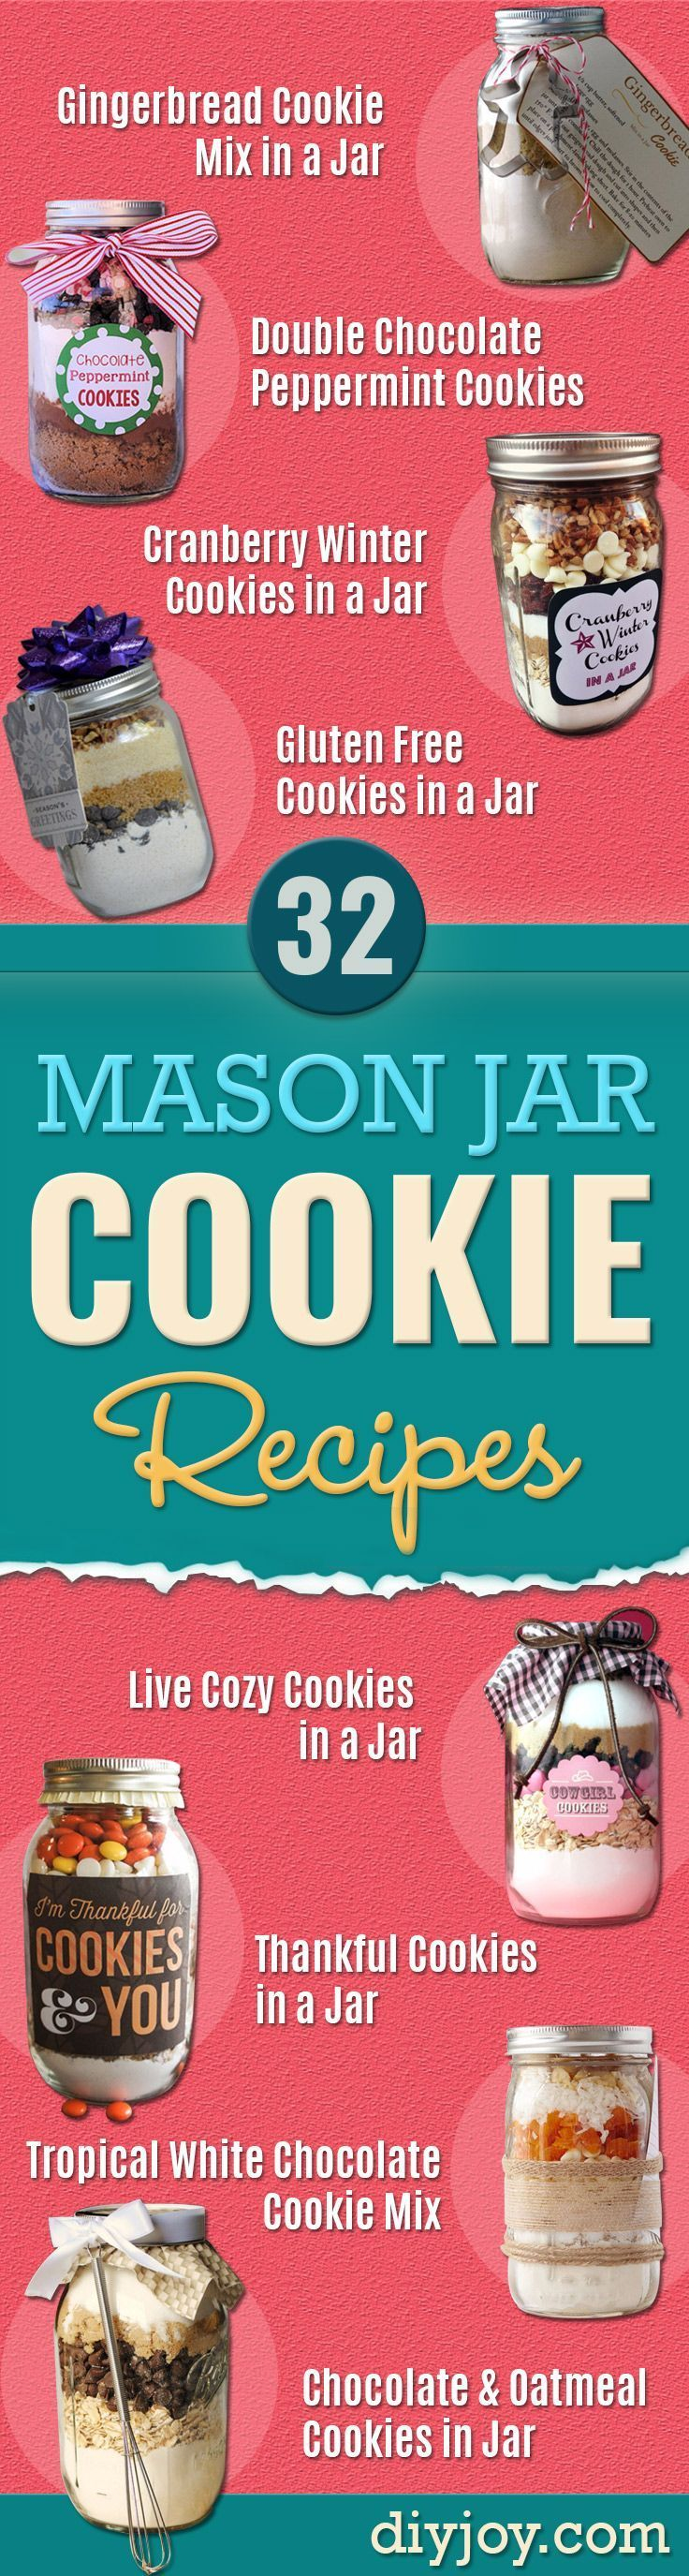 Best Mason Jar Cookies - Mason Jar Cookie Recipe Mix for Cute Decorated DIY Gifts - Easy Chocolate Chip Recipes, Christmas Presents and Wedding Favors in Mason Jars - Fun Ideas for DIY Parties and Cheap LAst Mintue Gift Ideas for Friends, Family and Neighbors http://diyjoy.com/best-mason-jar-cookie-recipes